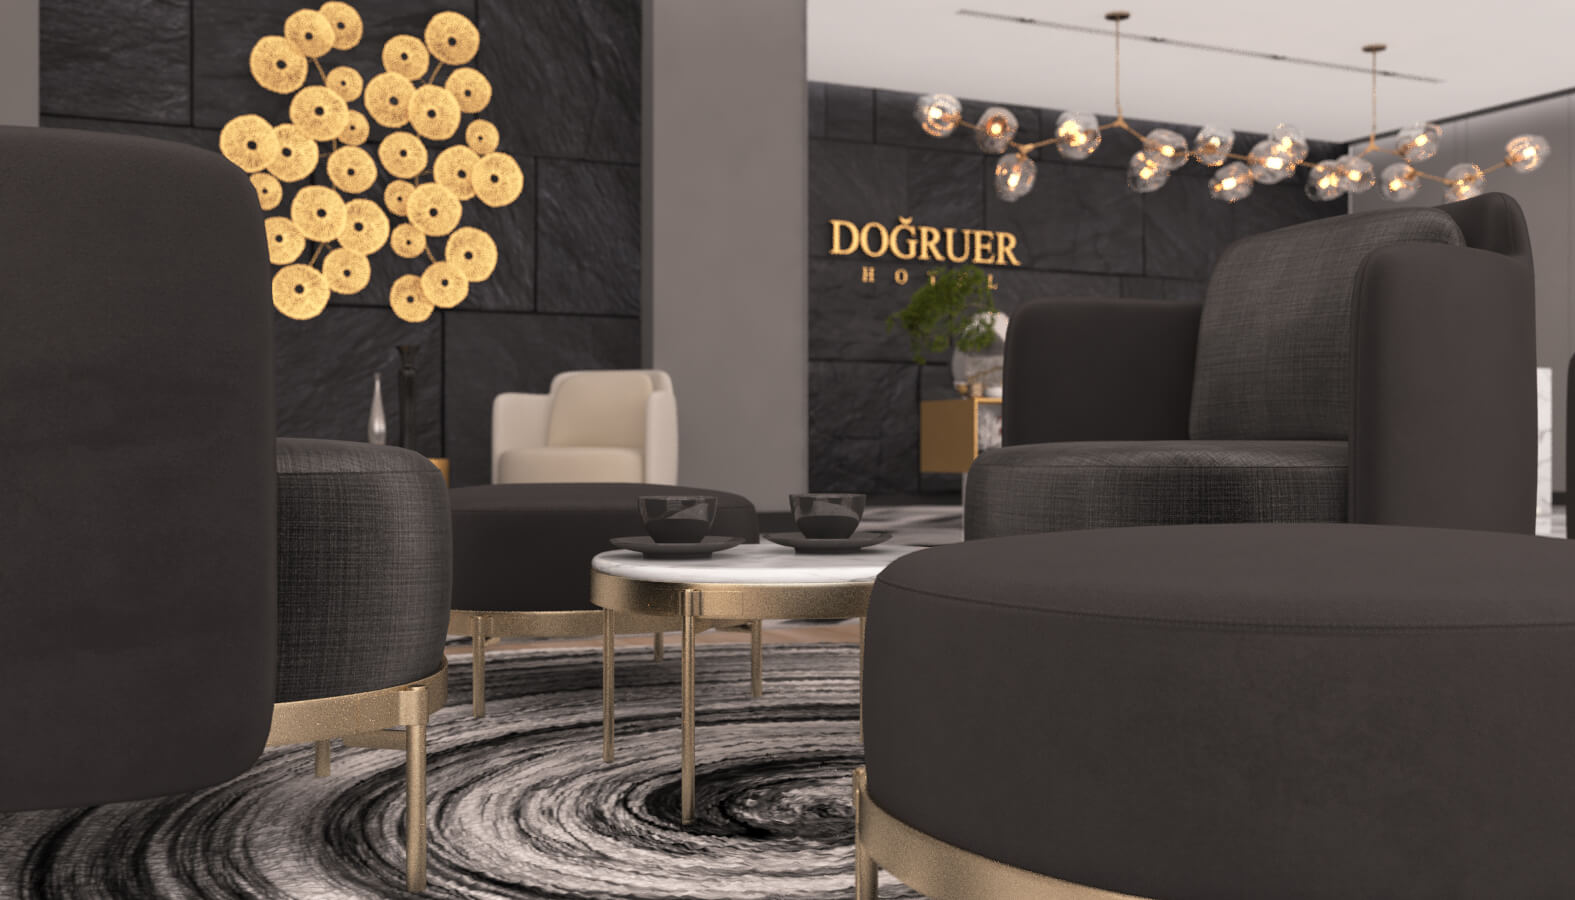 Hotel Architecture and Interior Design Dogruer hotel